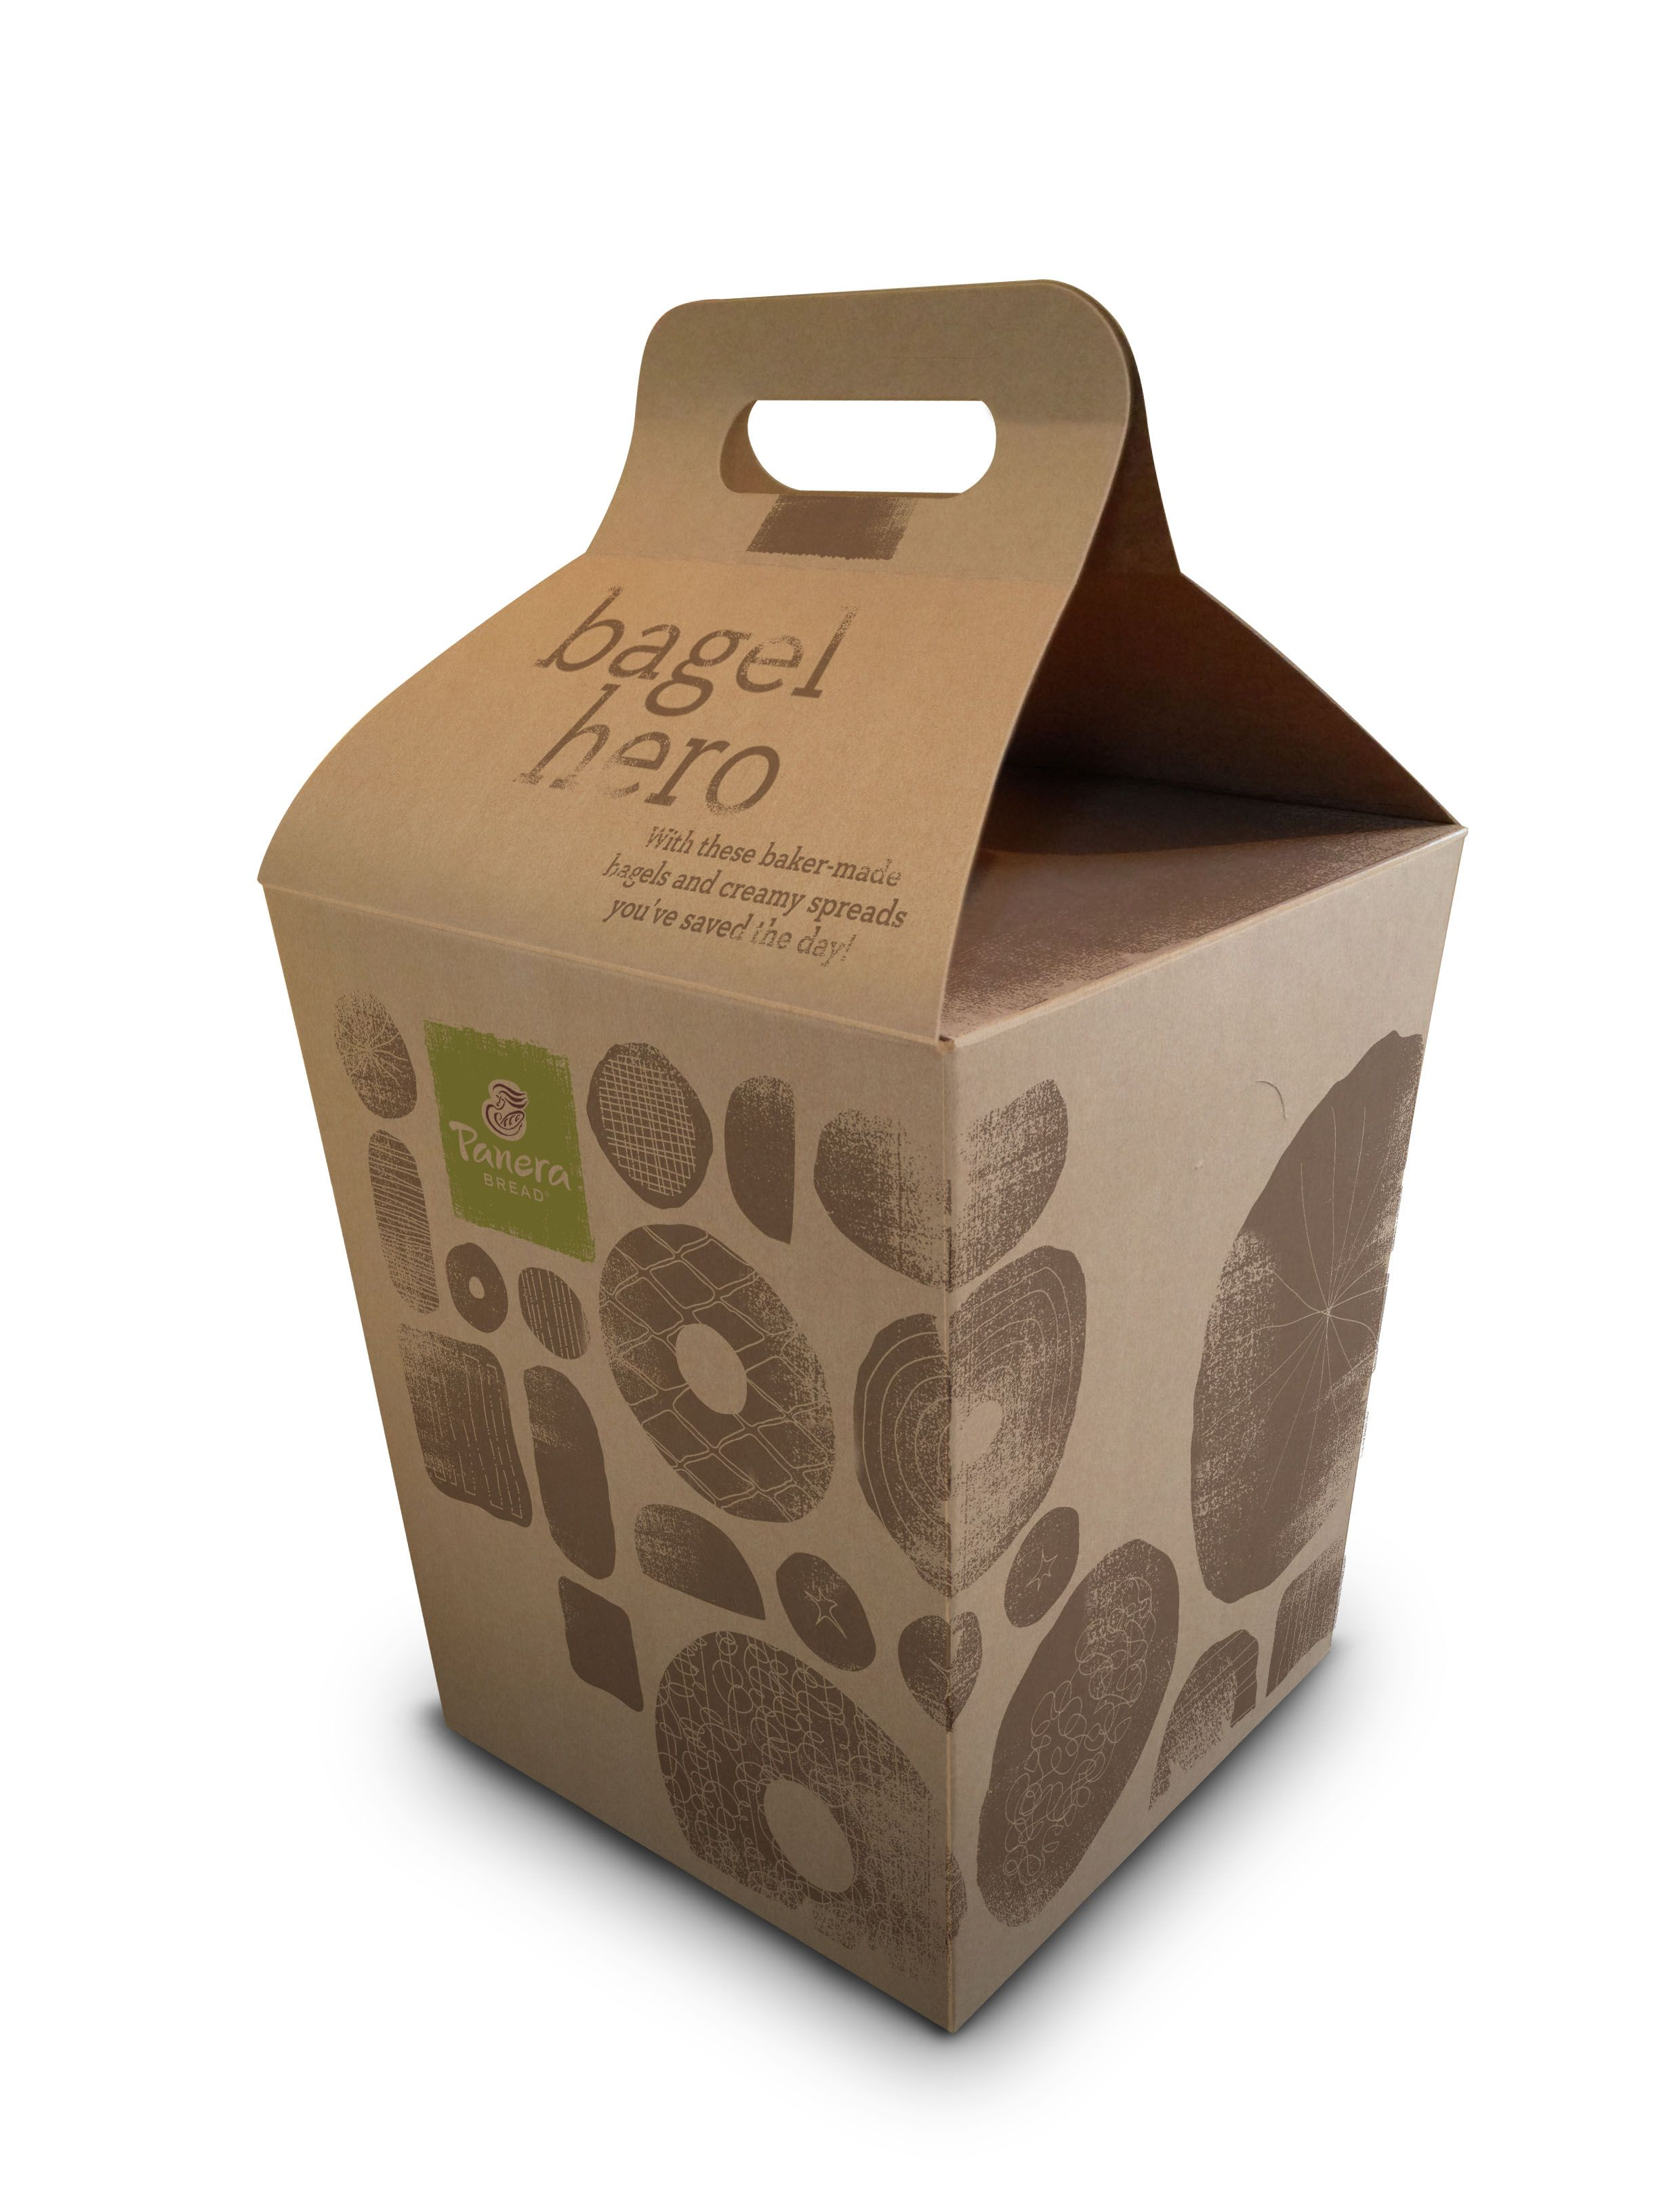 Panera Bread Coffee Box Enchanting Mitre Agency  Panera Bread  Packaging  Bagel Pack  Mitre Review